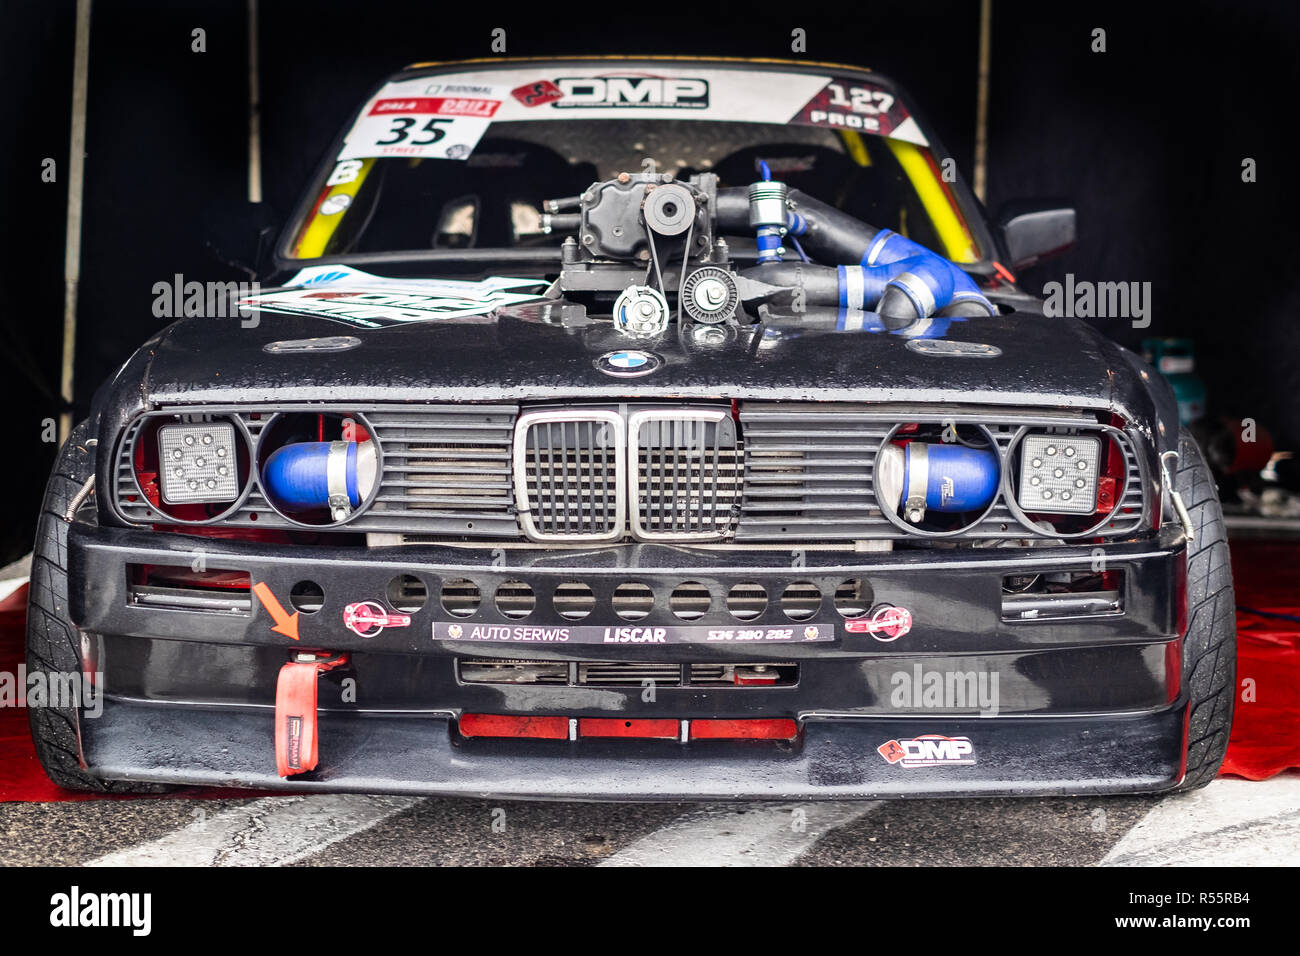 Drift Car High Resolution Stock Photography And Images Alamy